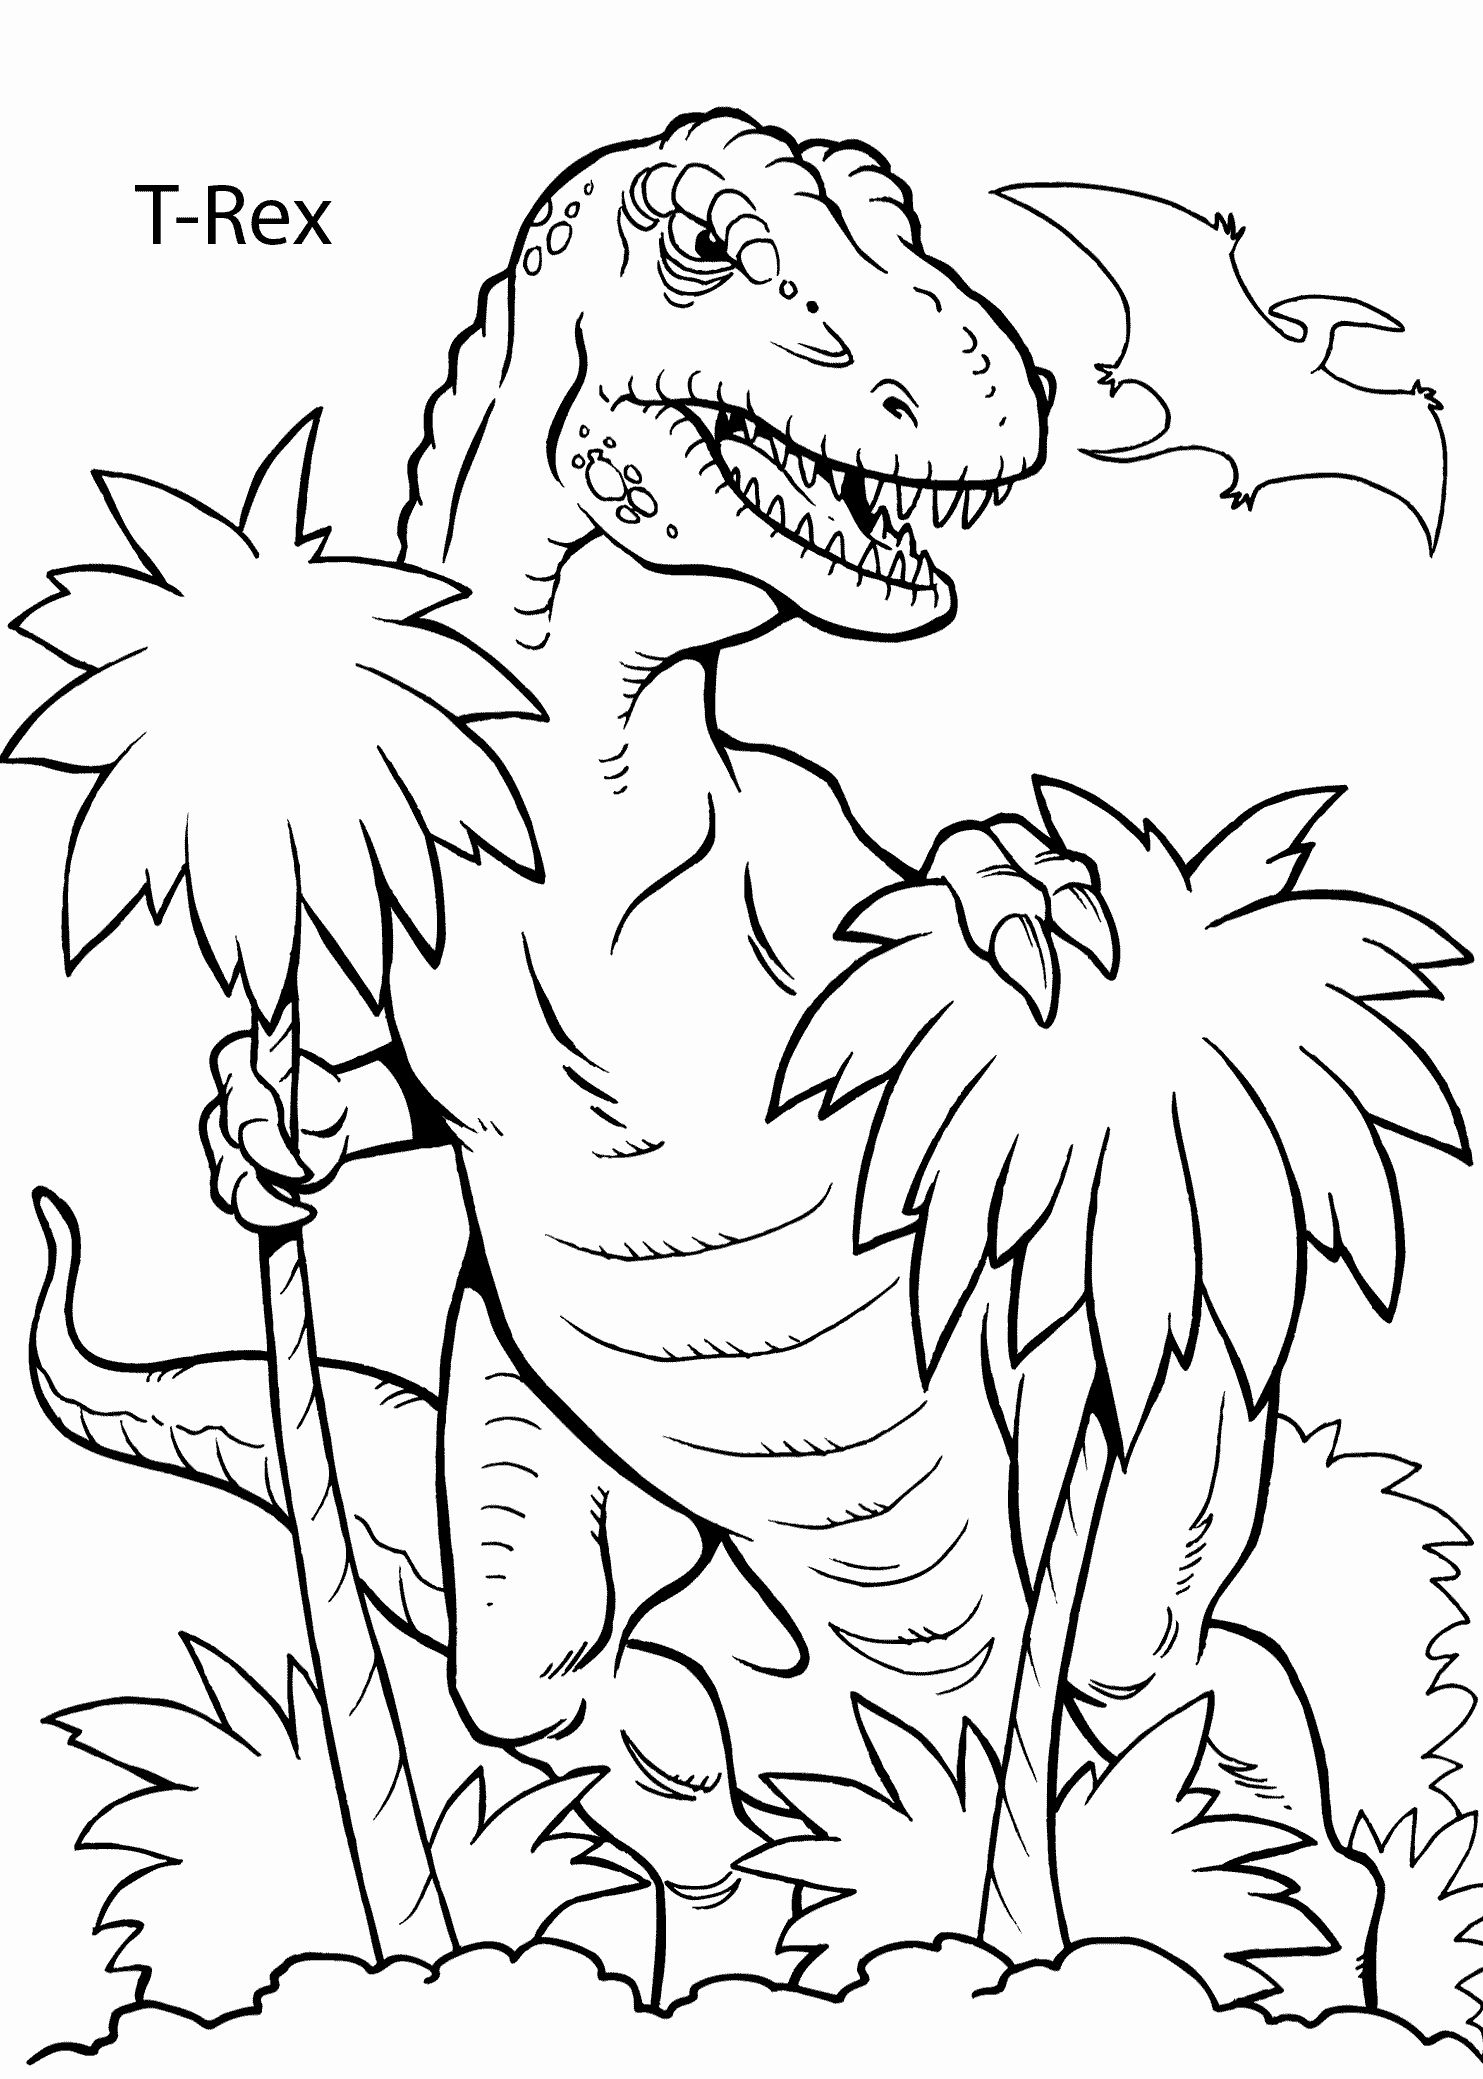 Nature Coloring Book Pdf Fresh Pin By Get Highit On Coloring Pages Spring Coloring Pages Dinosaur Coloring Pages Dinosaur Coloring Sheets